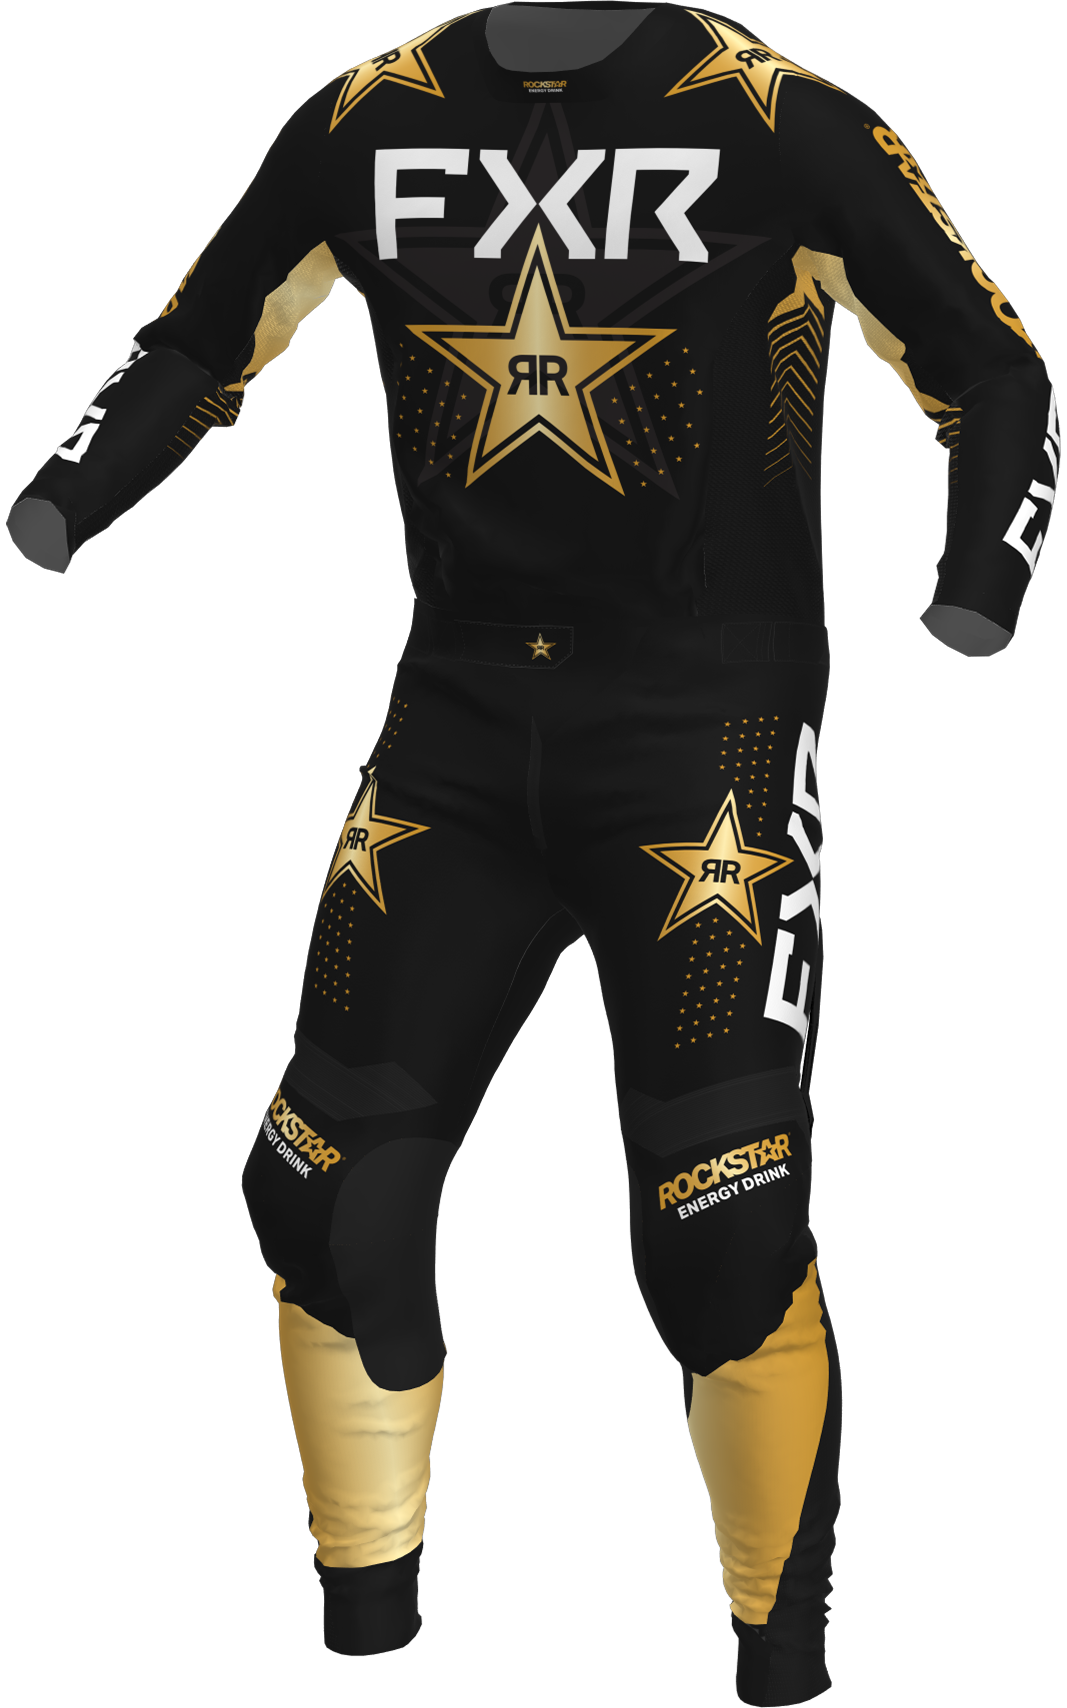 A 3D image of FXR's Podium MX Jersey and Pant 22 in rockstar colorway